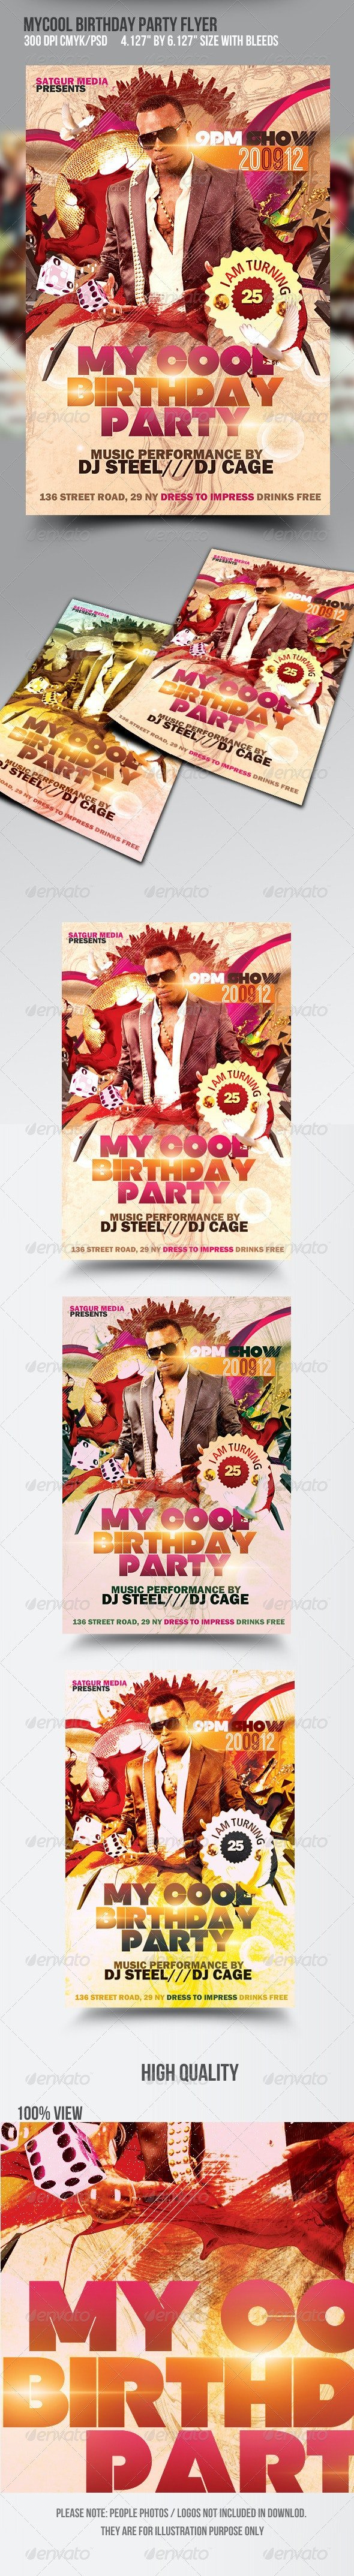 My Cool Birthday Party Flyer - Clubs & Parties Events